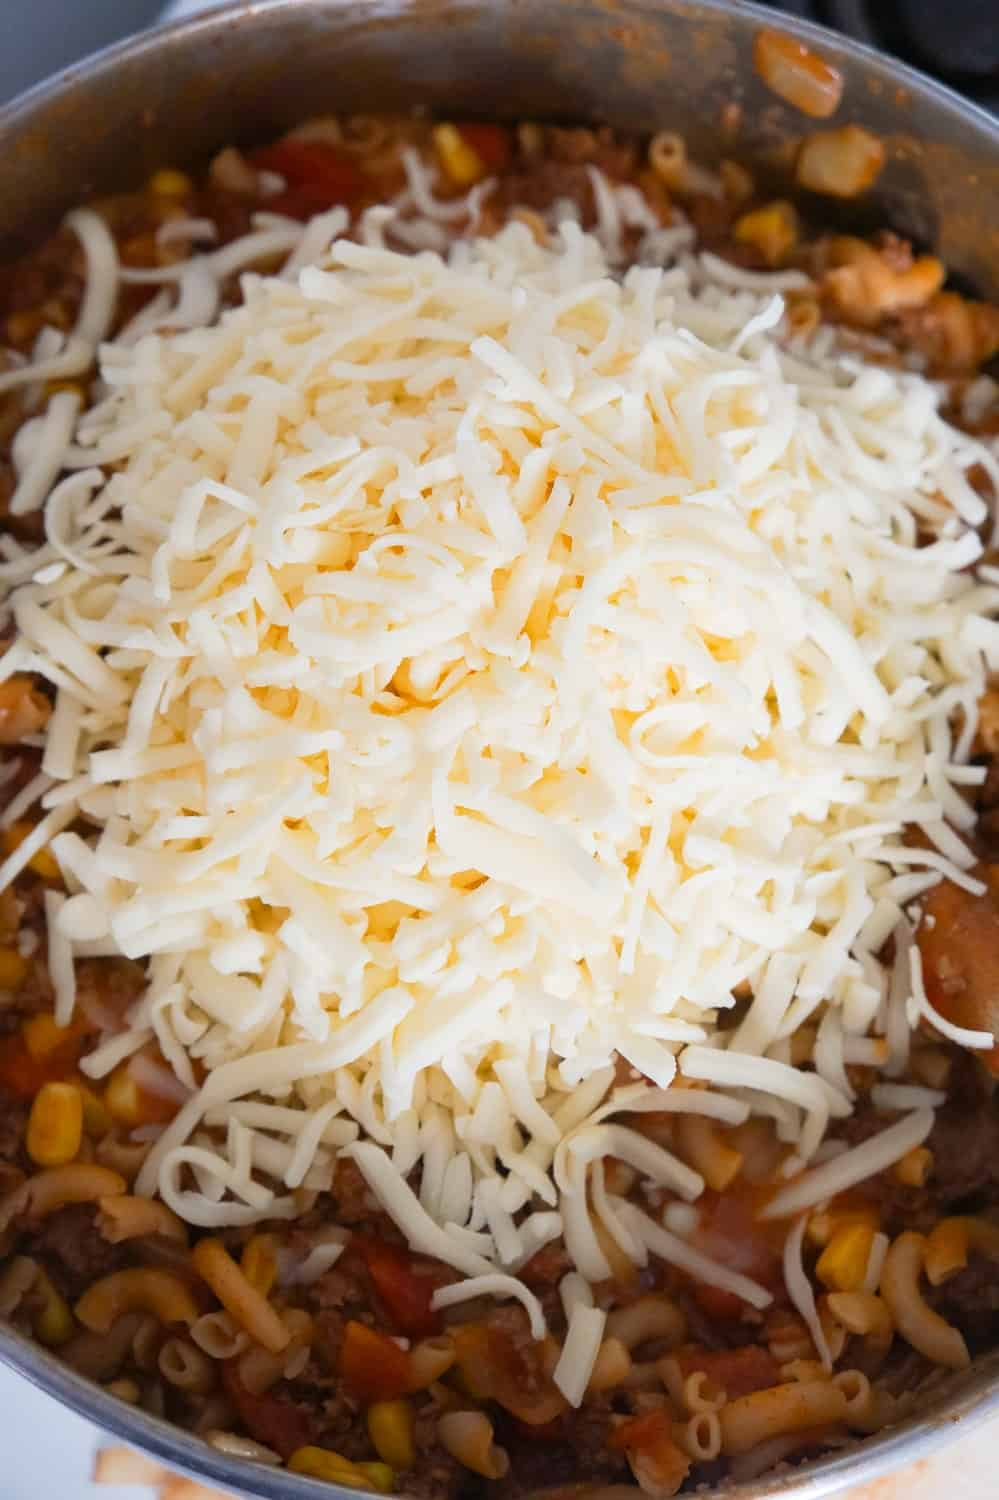 shredded mozzarella cheese on top of beef goulash